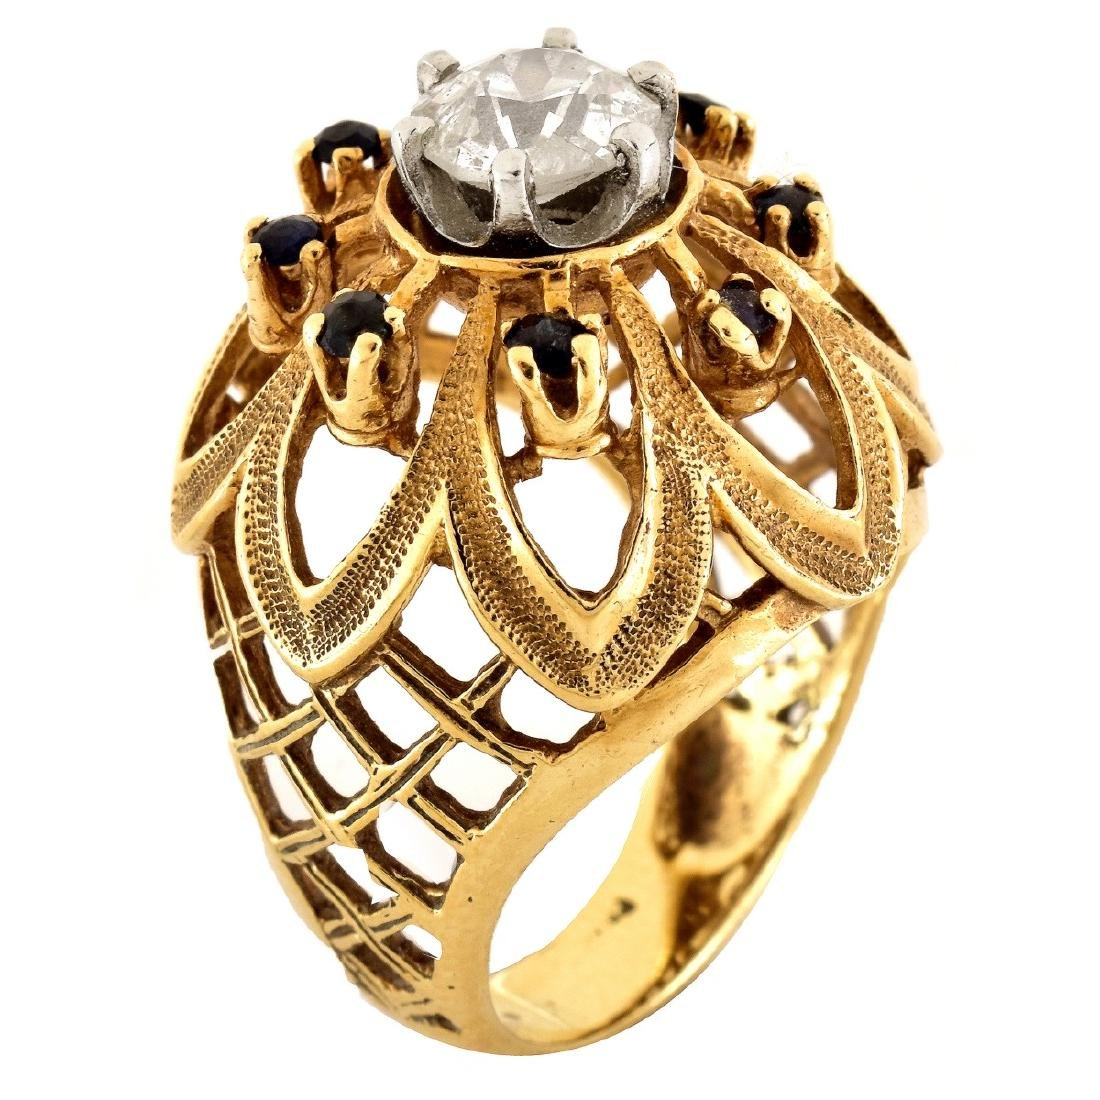 1.0ct Diamond and 14K Gold Ring